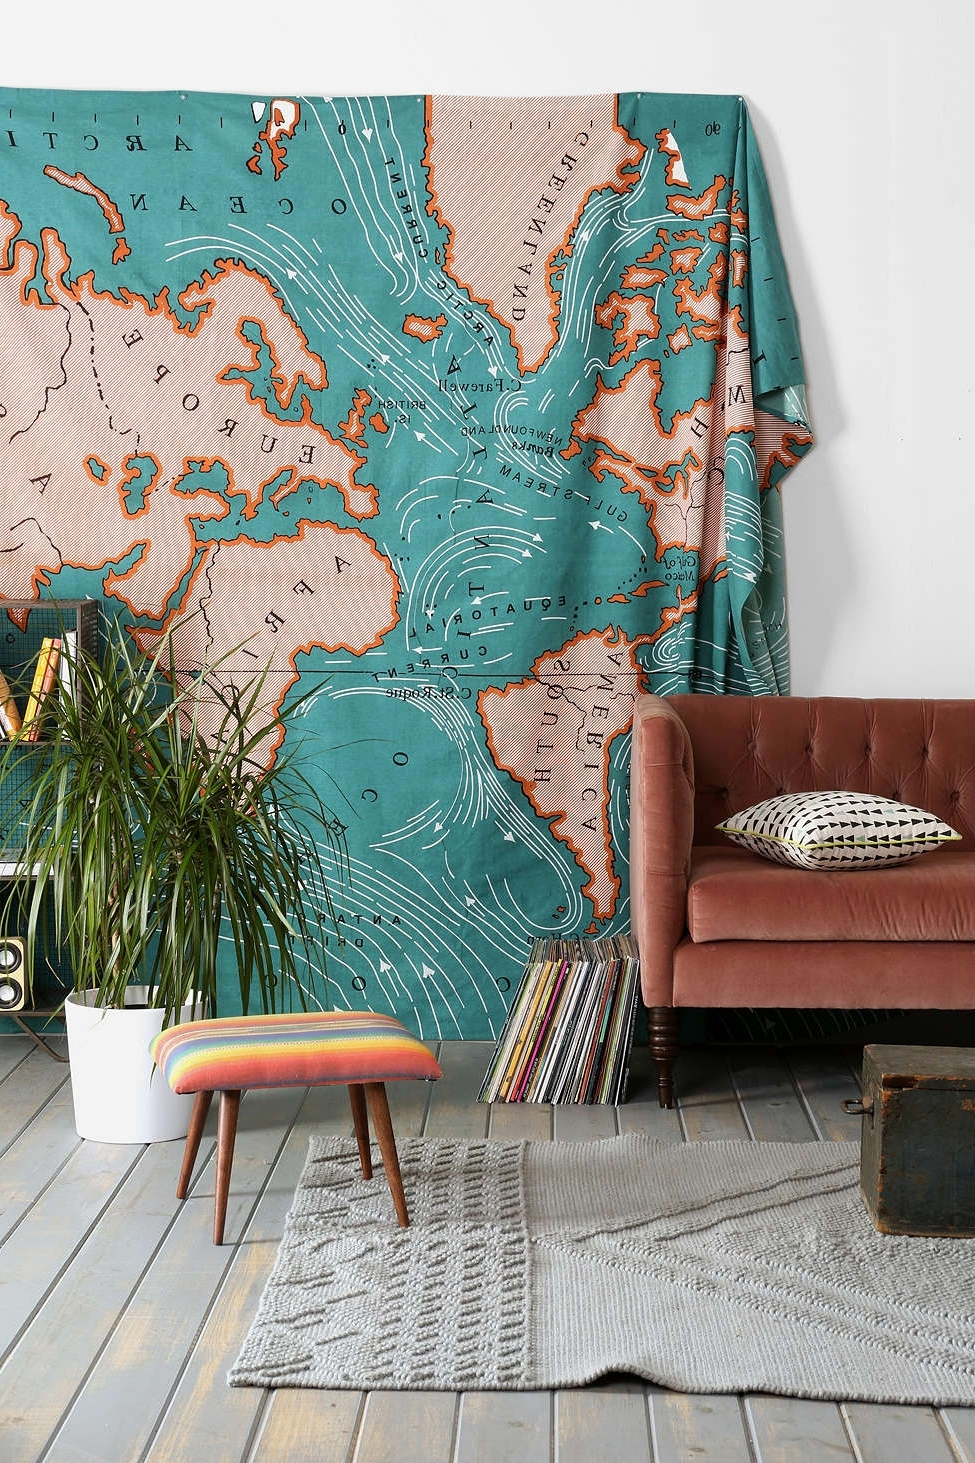 Fabric Wall Art Urban Outfitters Within Fashionable Spice Up Your Space: 20 Living Room Wall Decor Ideas (View 7 of 15)